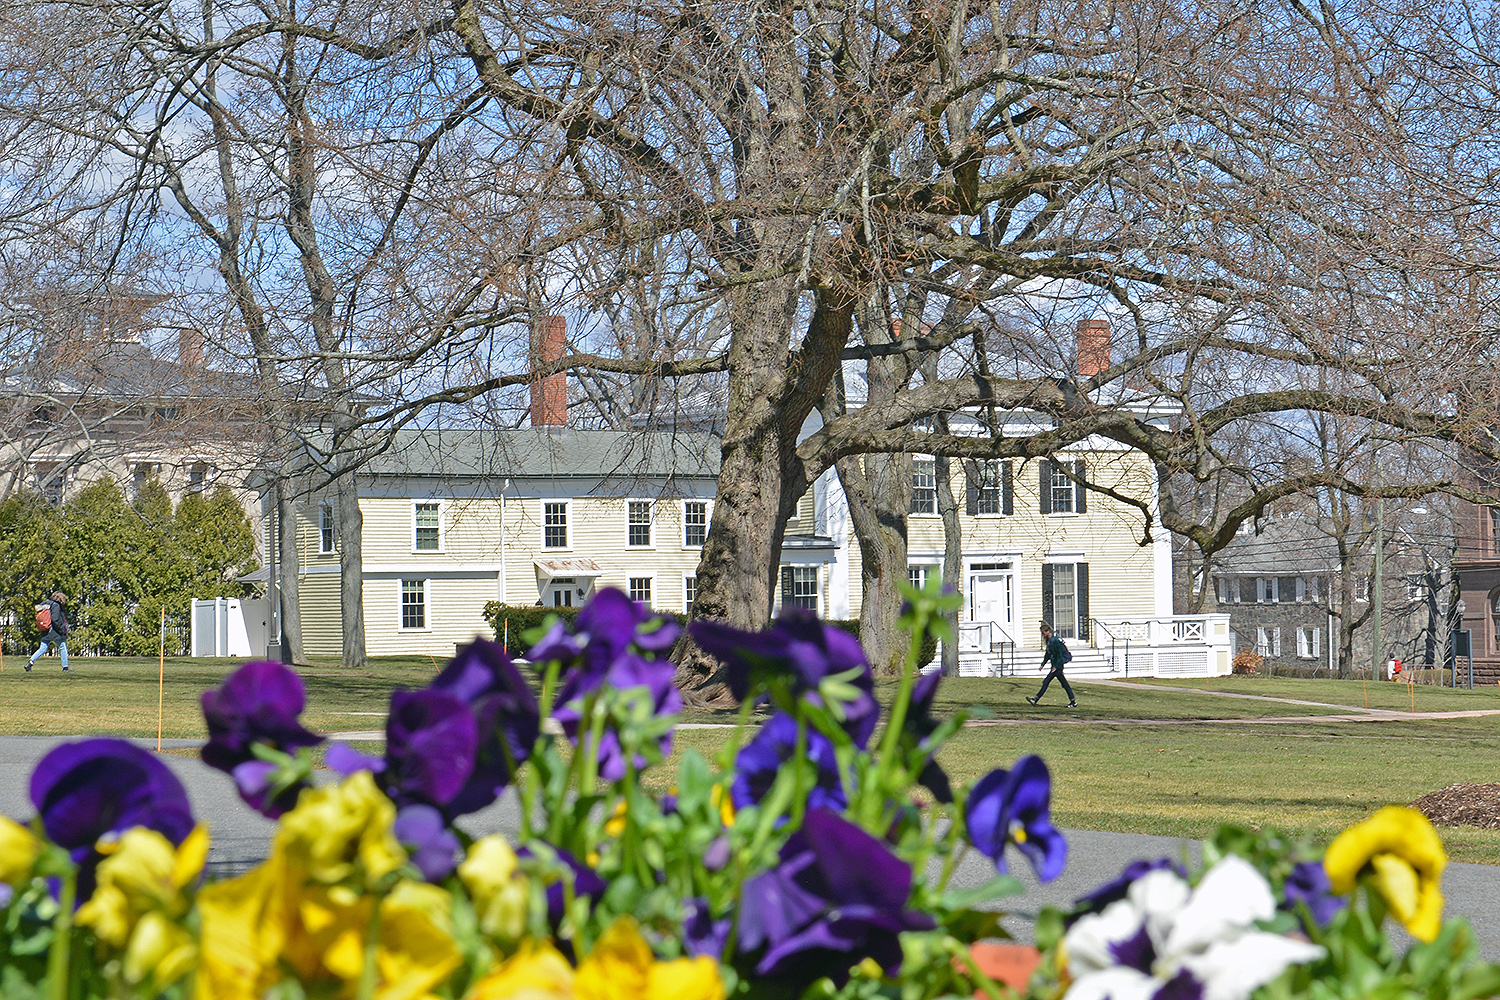 Pansies are planted in several containers on College Row.